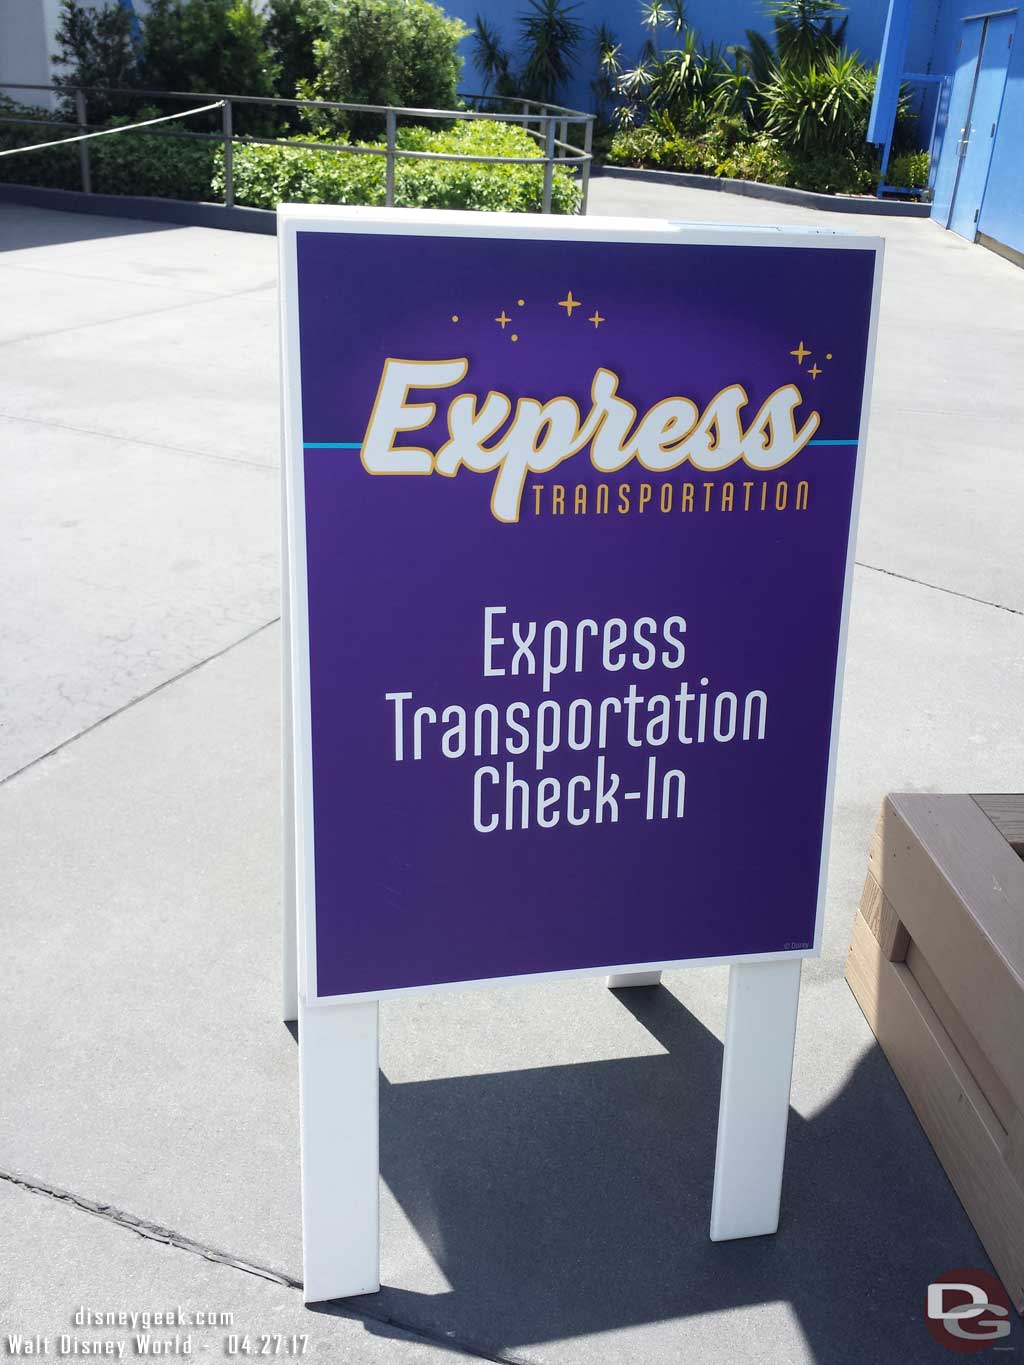 Used the Express Transportation Bus to get from the Magic Kingdom to Epcot.